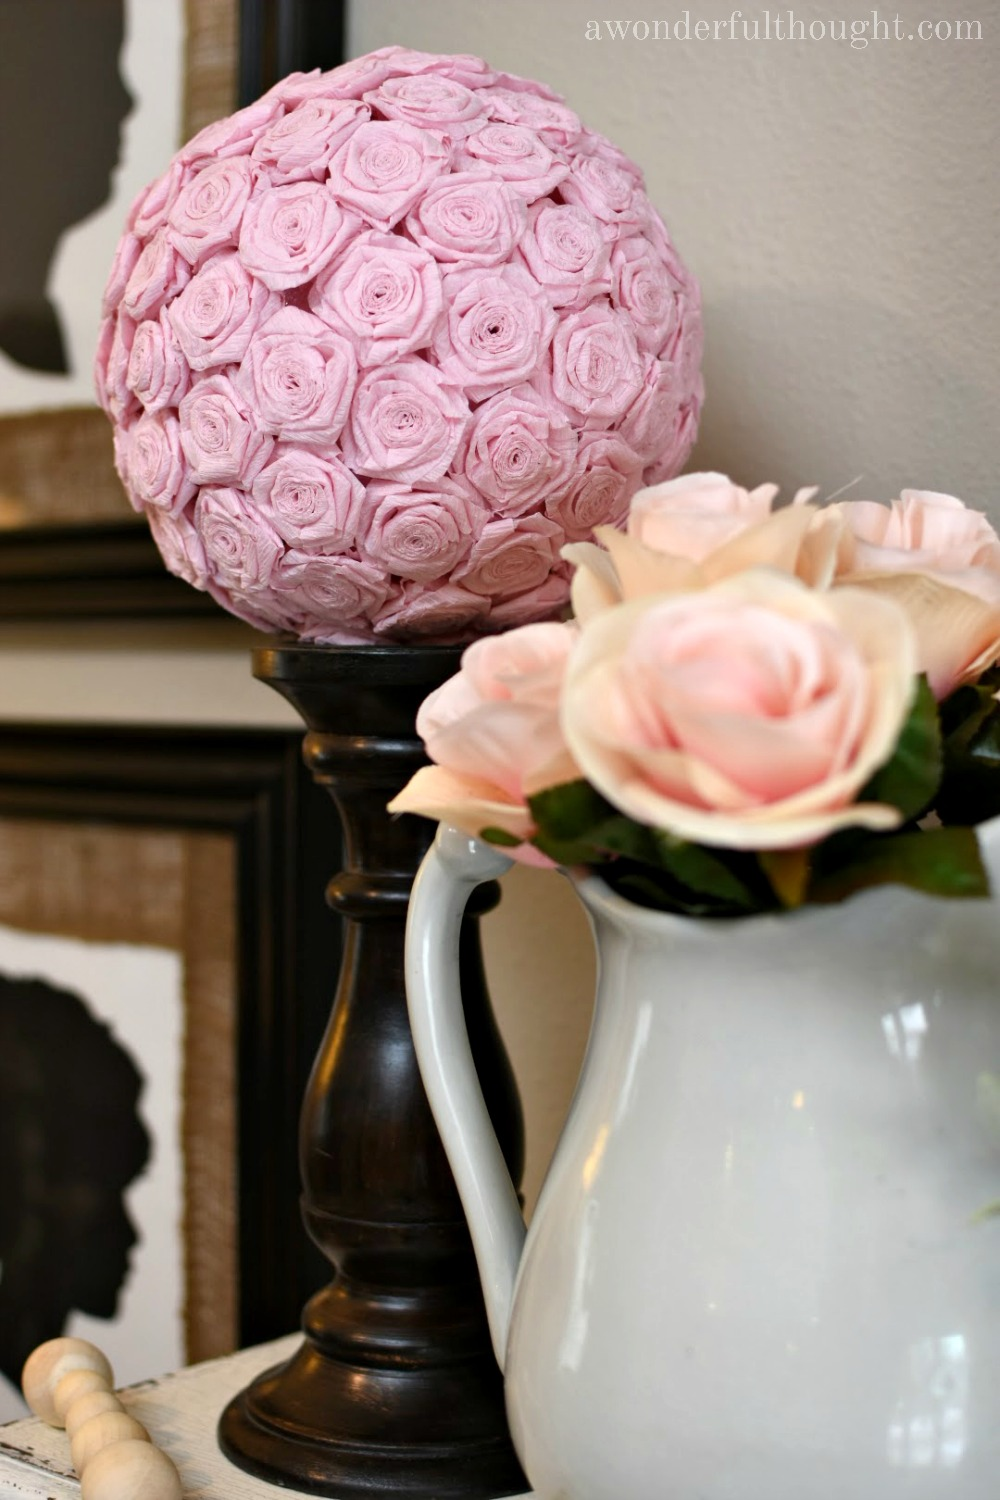 Diy crepe paper flower kissing ball a wonderful thought diy crepe paper flower kissing ball awonderfulthought mightylinksfo Image collections